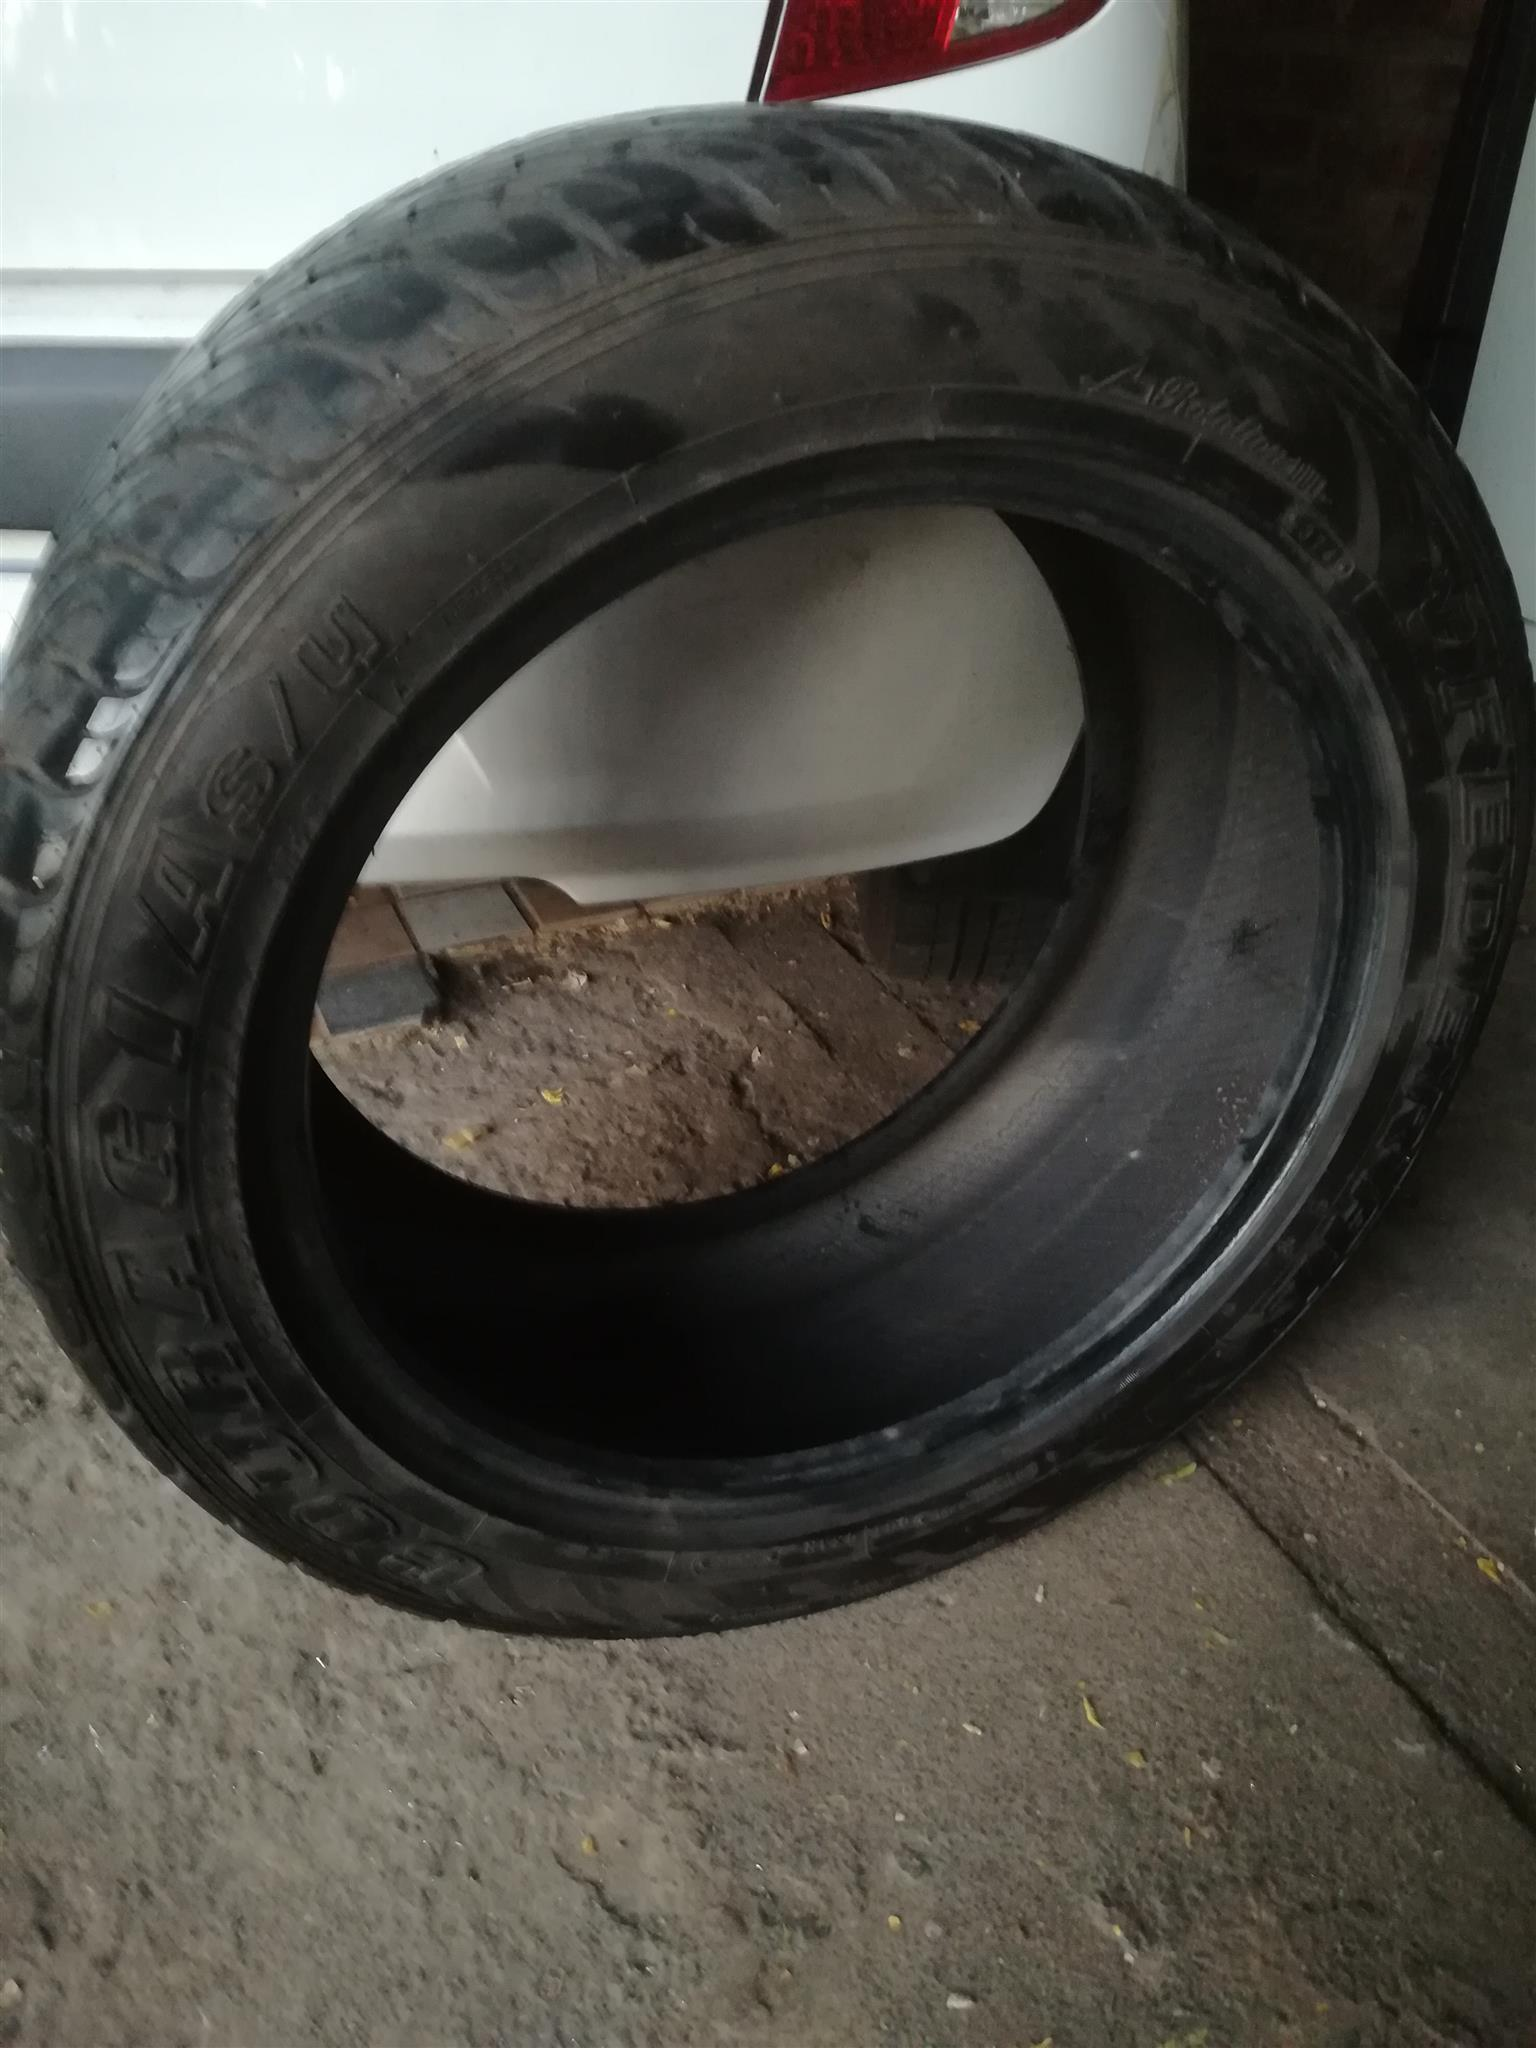 1 x used Federal COURAGIA 285/45 R19 M+S tubeless tyre in very good condition for sale - R995 cash.  WhatsApp sms or call Pierre on 0825784861